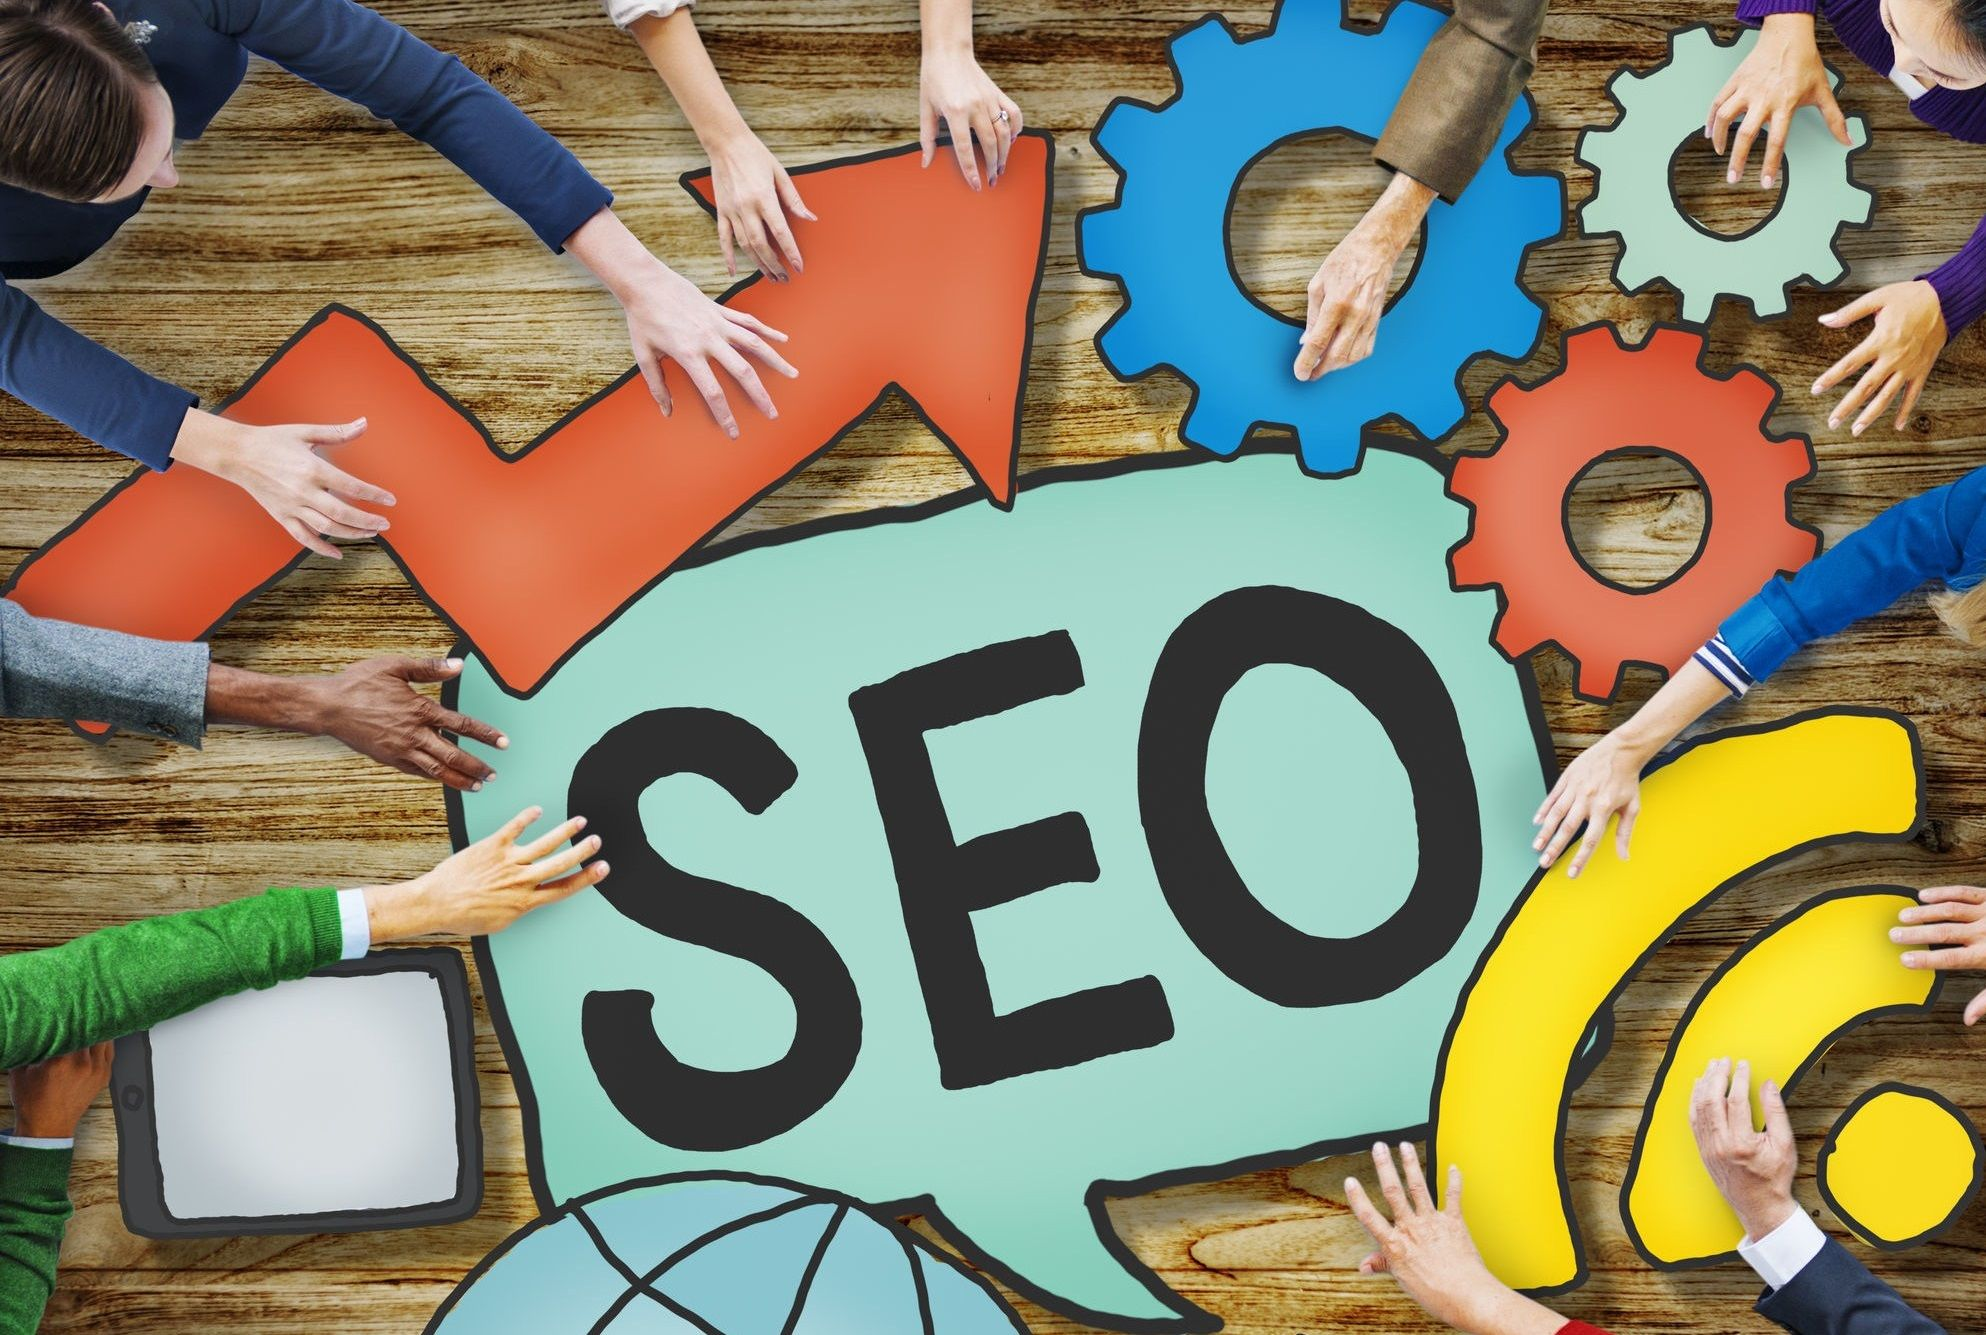 Best Seo Tools to Search for Keywords Top 19 Seo Tools